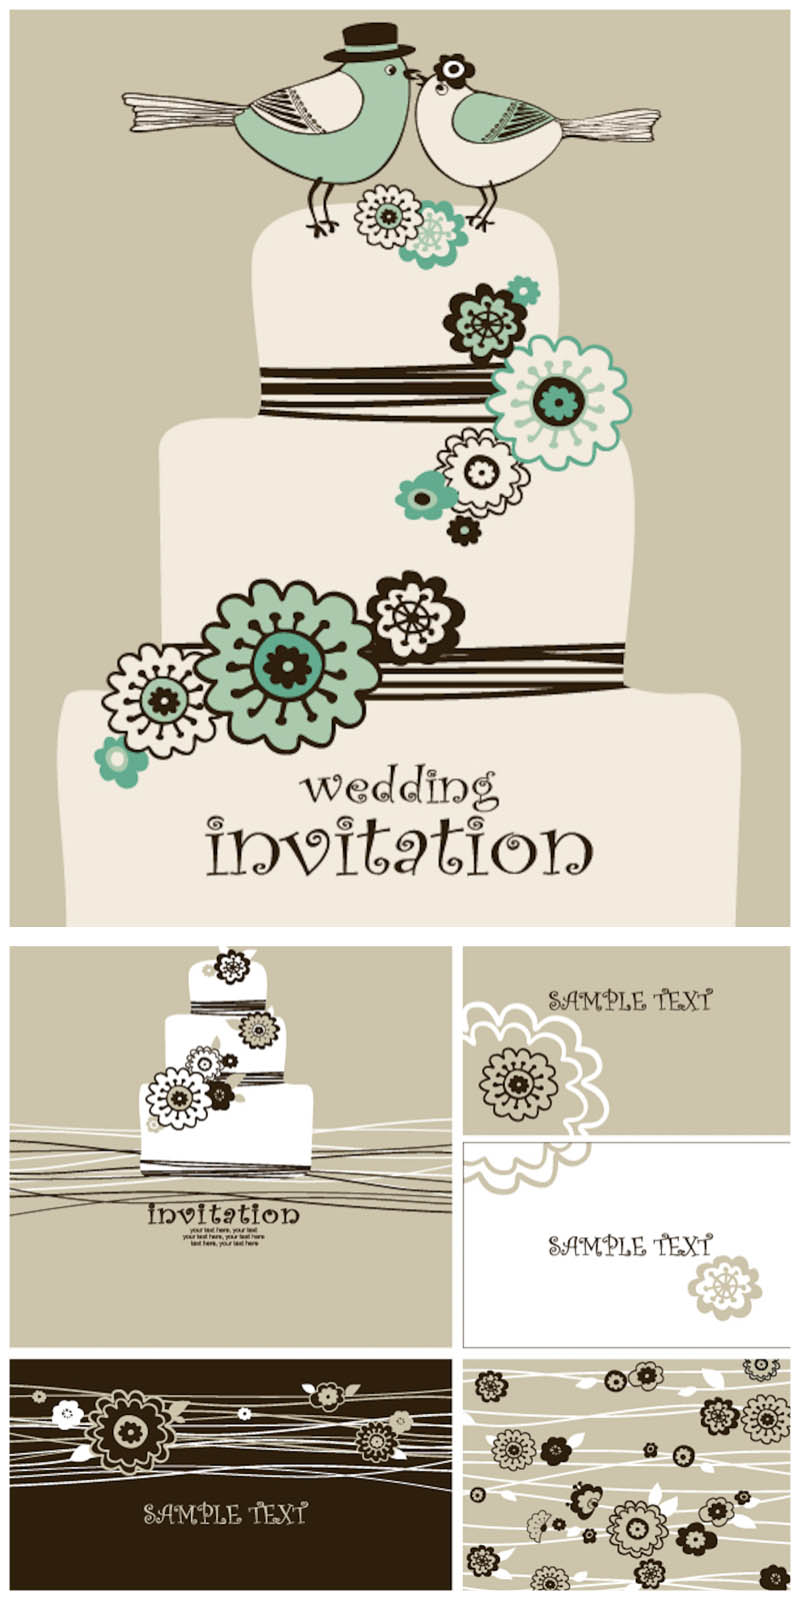 13 Vector Graphic Wedding Invitation Card Images